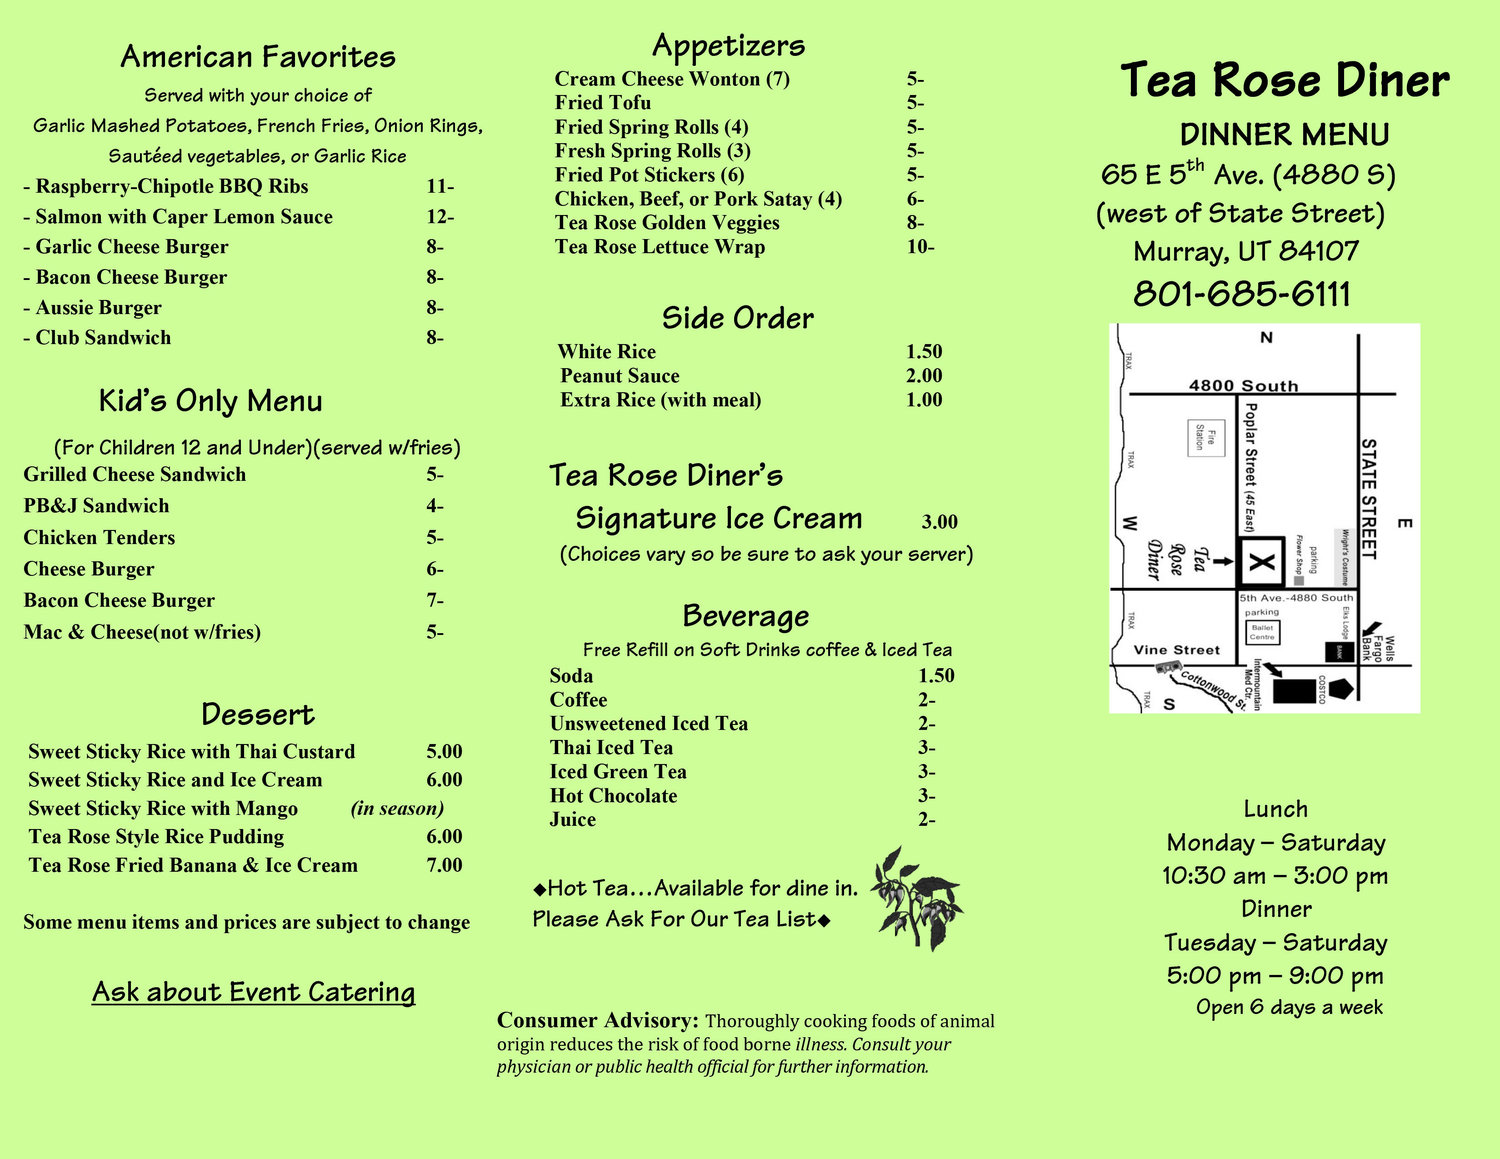 Tea Rose Diner menu 2